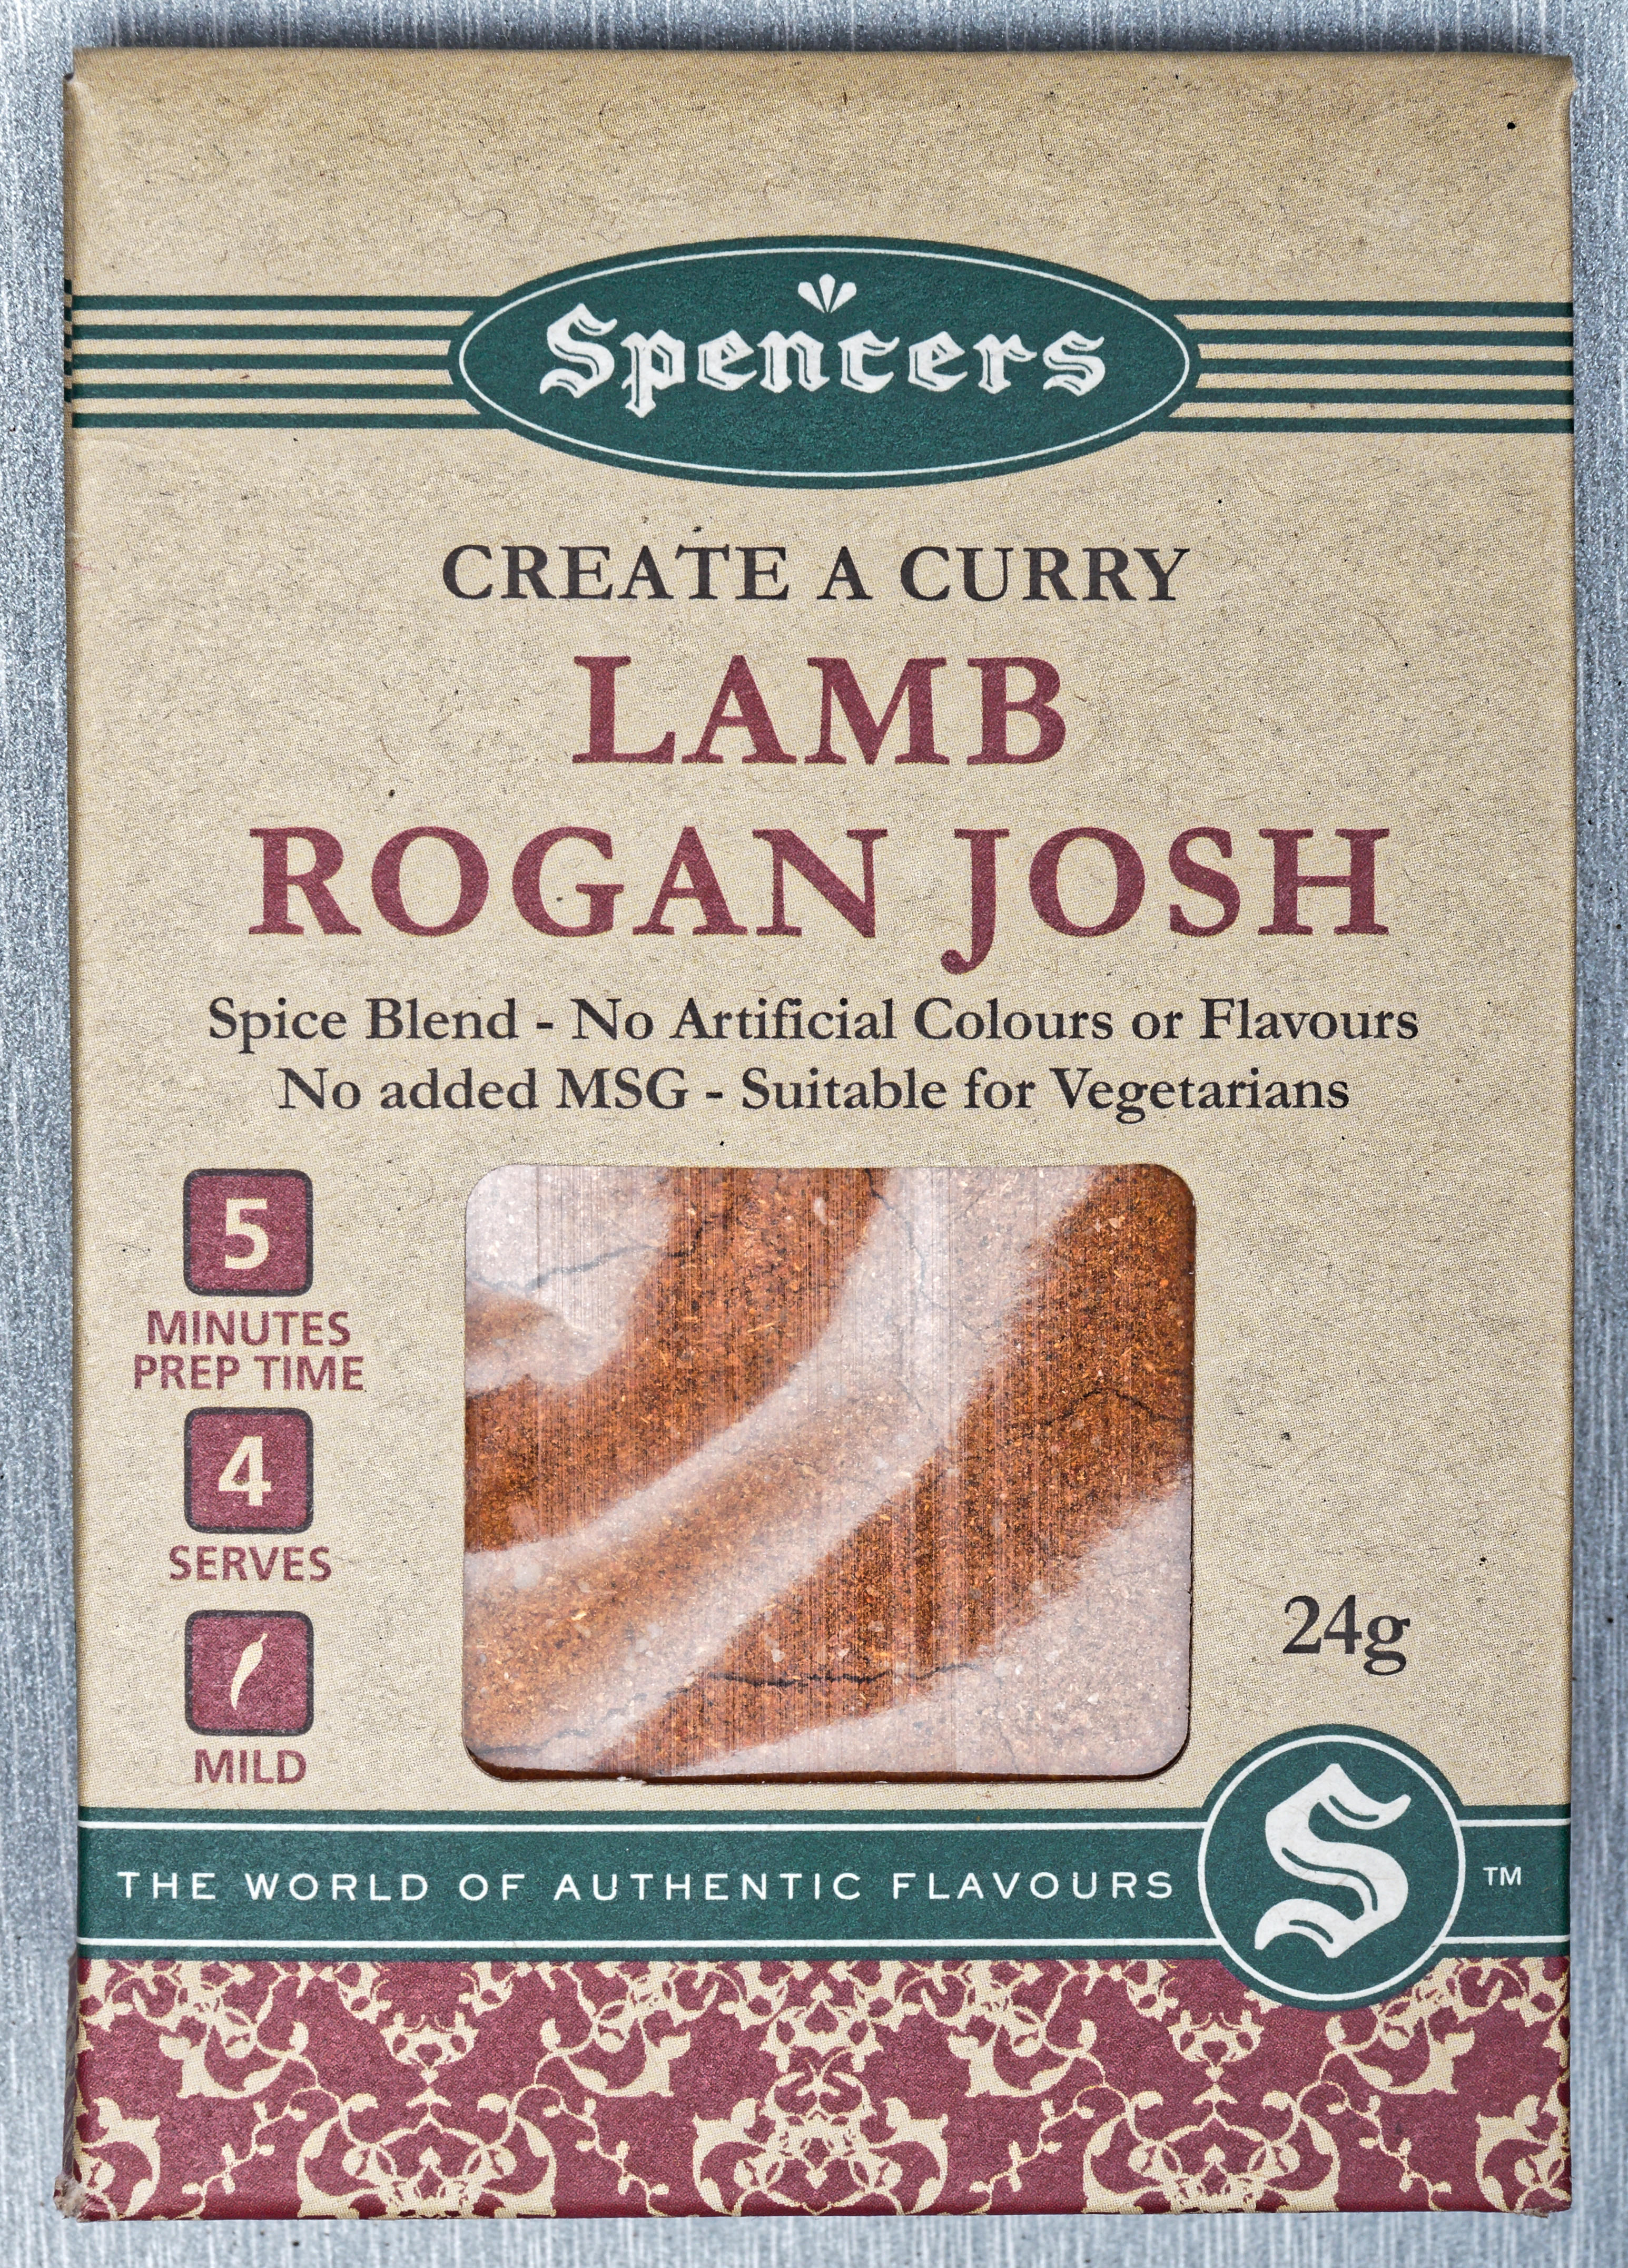 This should be Vegetarian-spices-1.jpeg.  Is it missing?